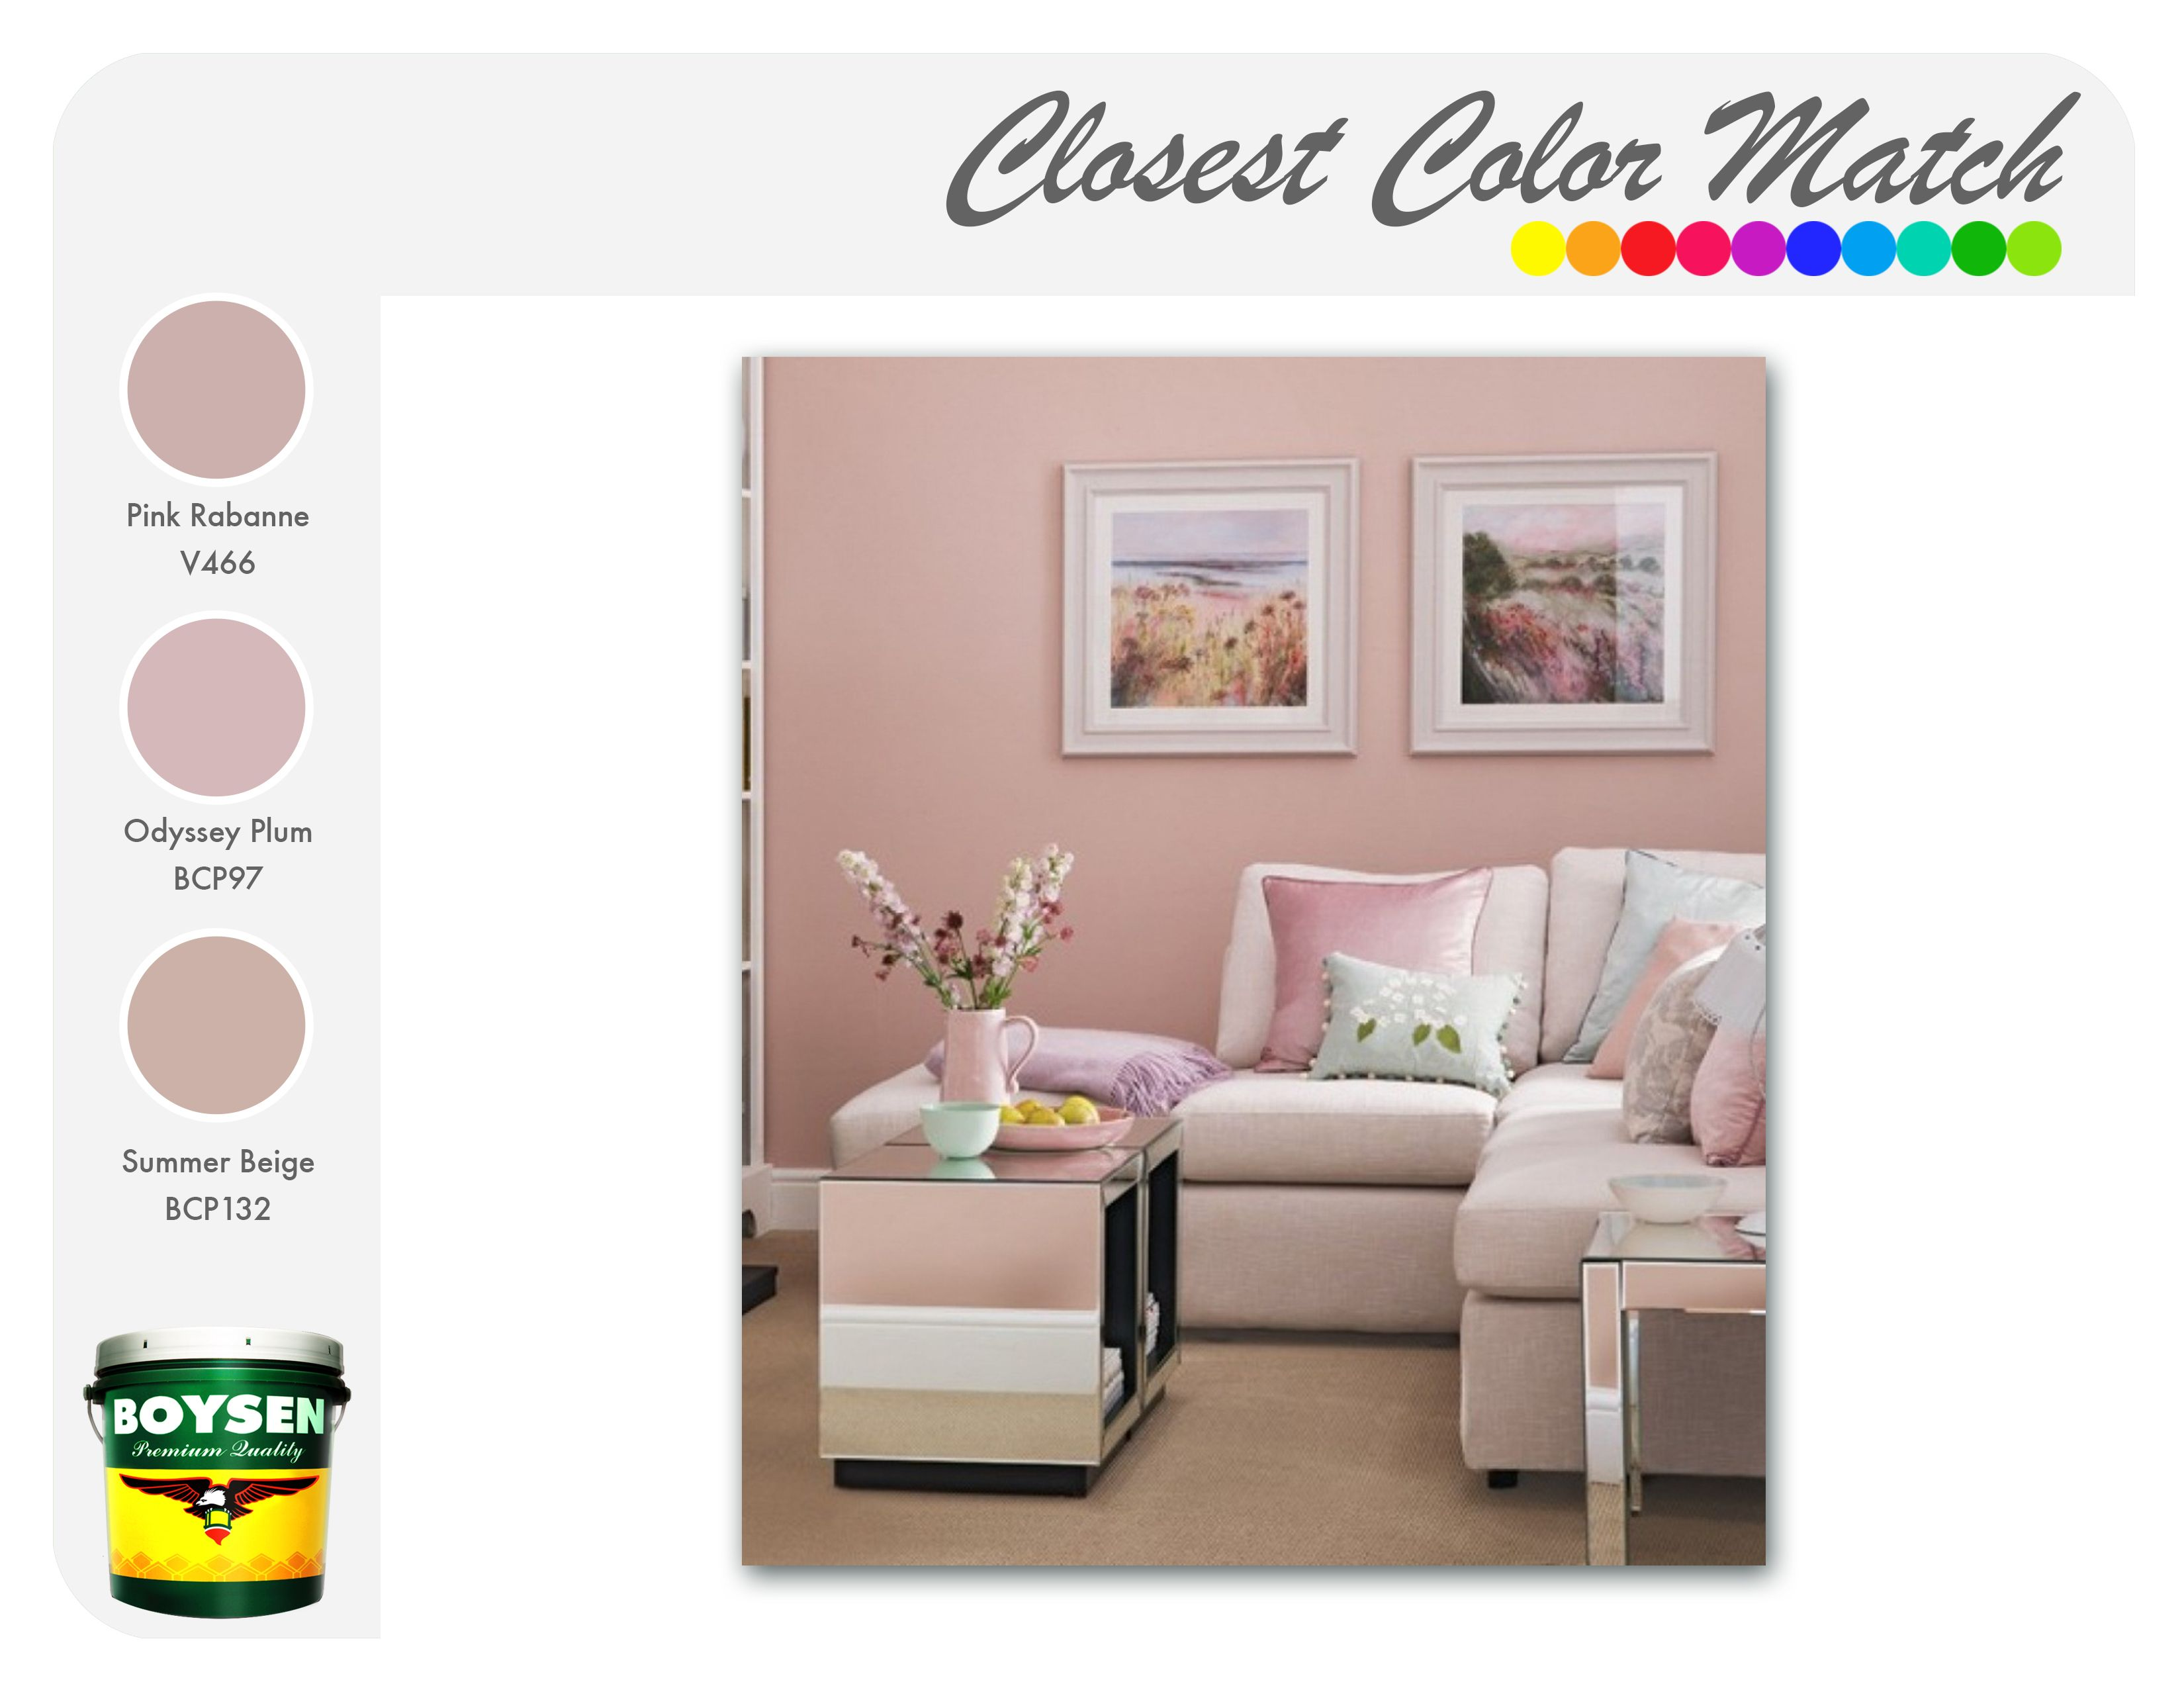 Blush Pink Create An Air Of Charm And Elegance By Painting Your